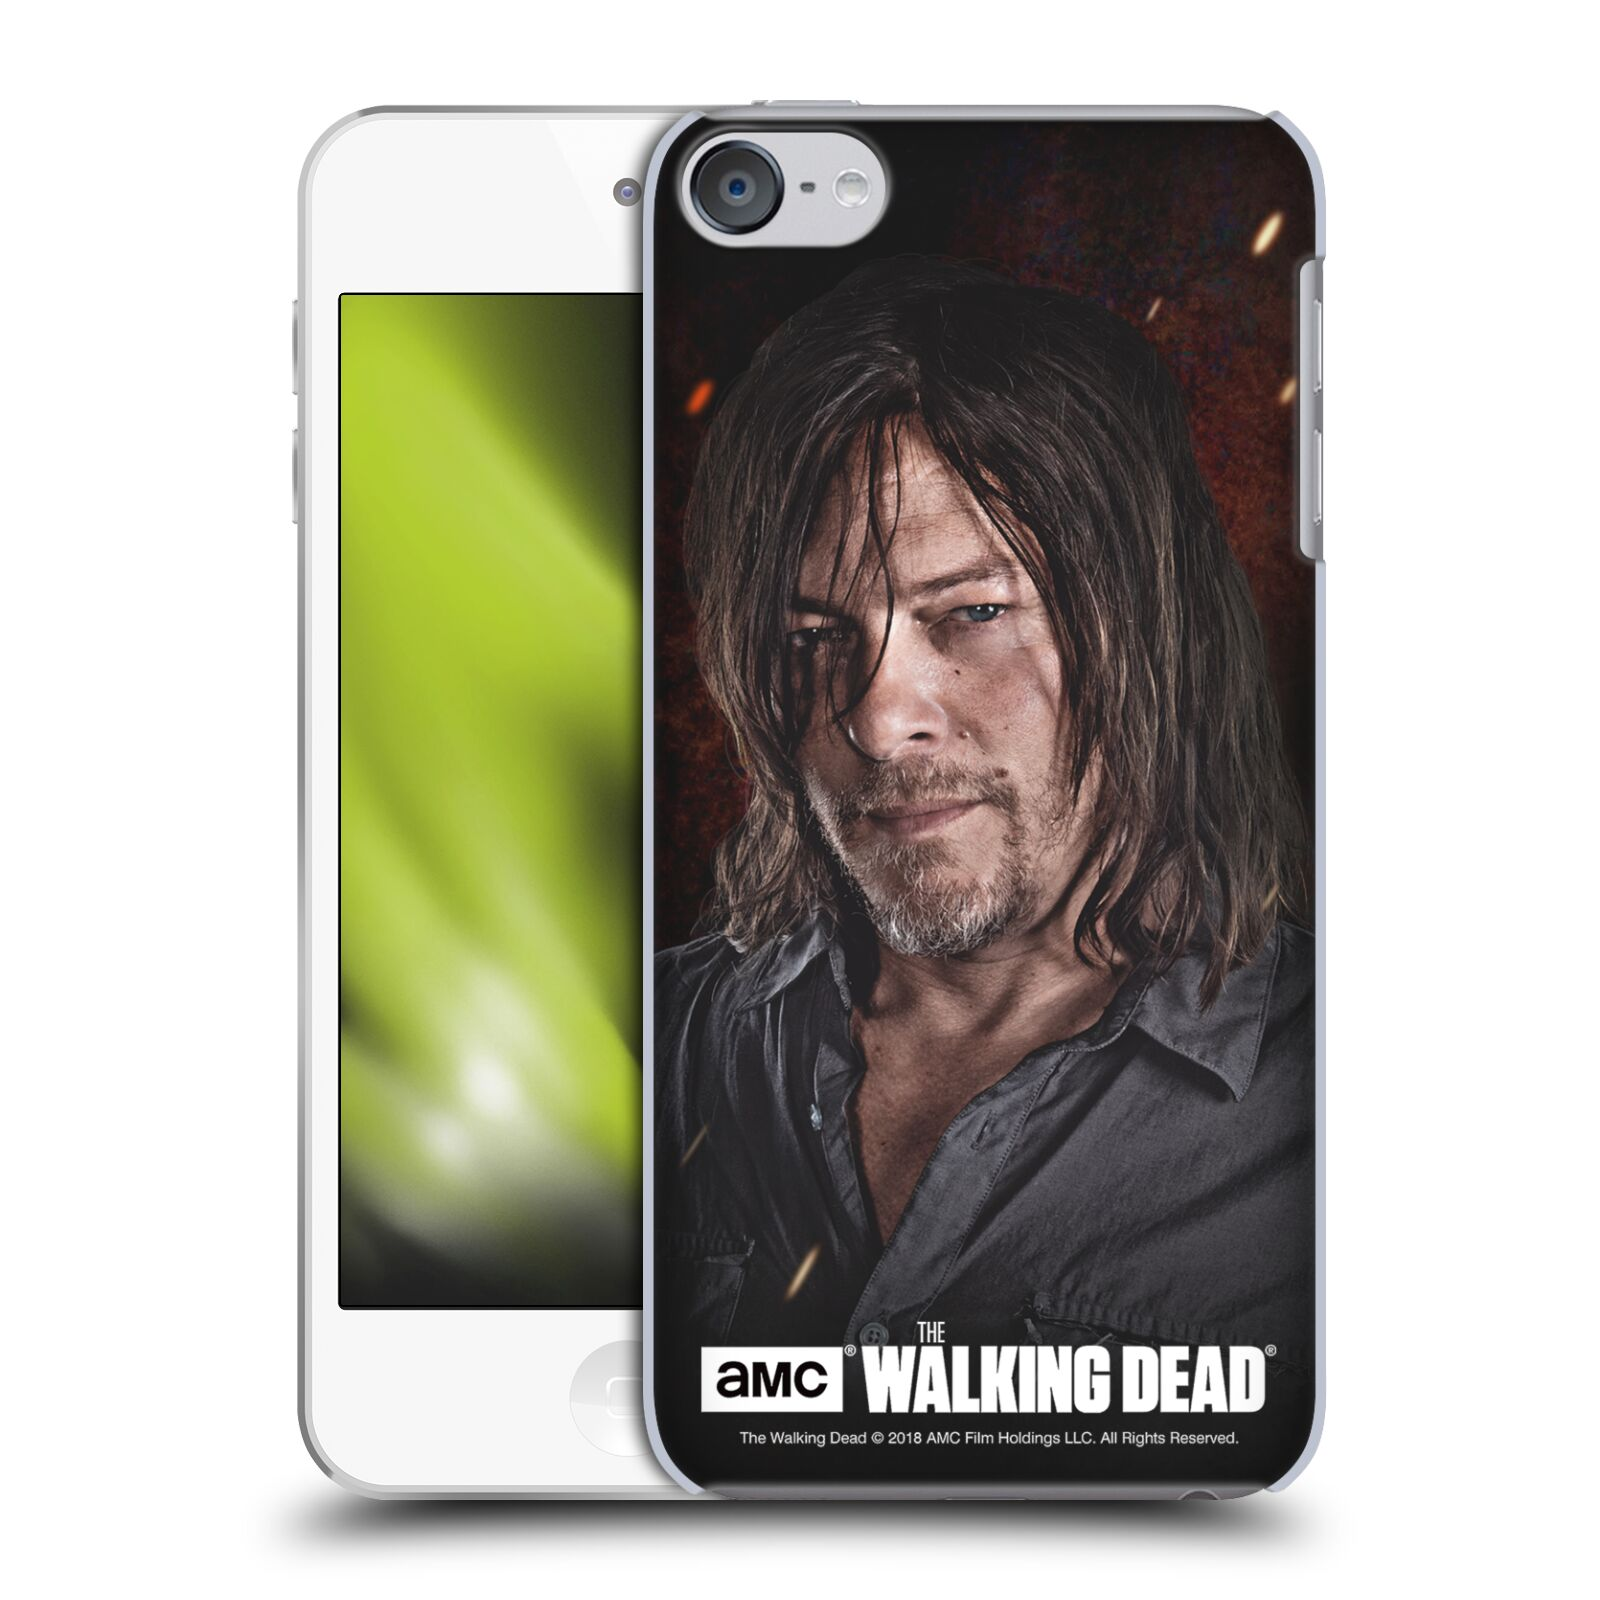 OFFICIAL-AMC-THE-WALKING-DEAD-SEASON-8-PORTRAITS-CASE-FOR-APPLE-iPOD-TOUCH-MP3